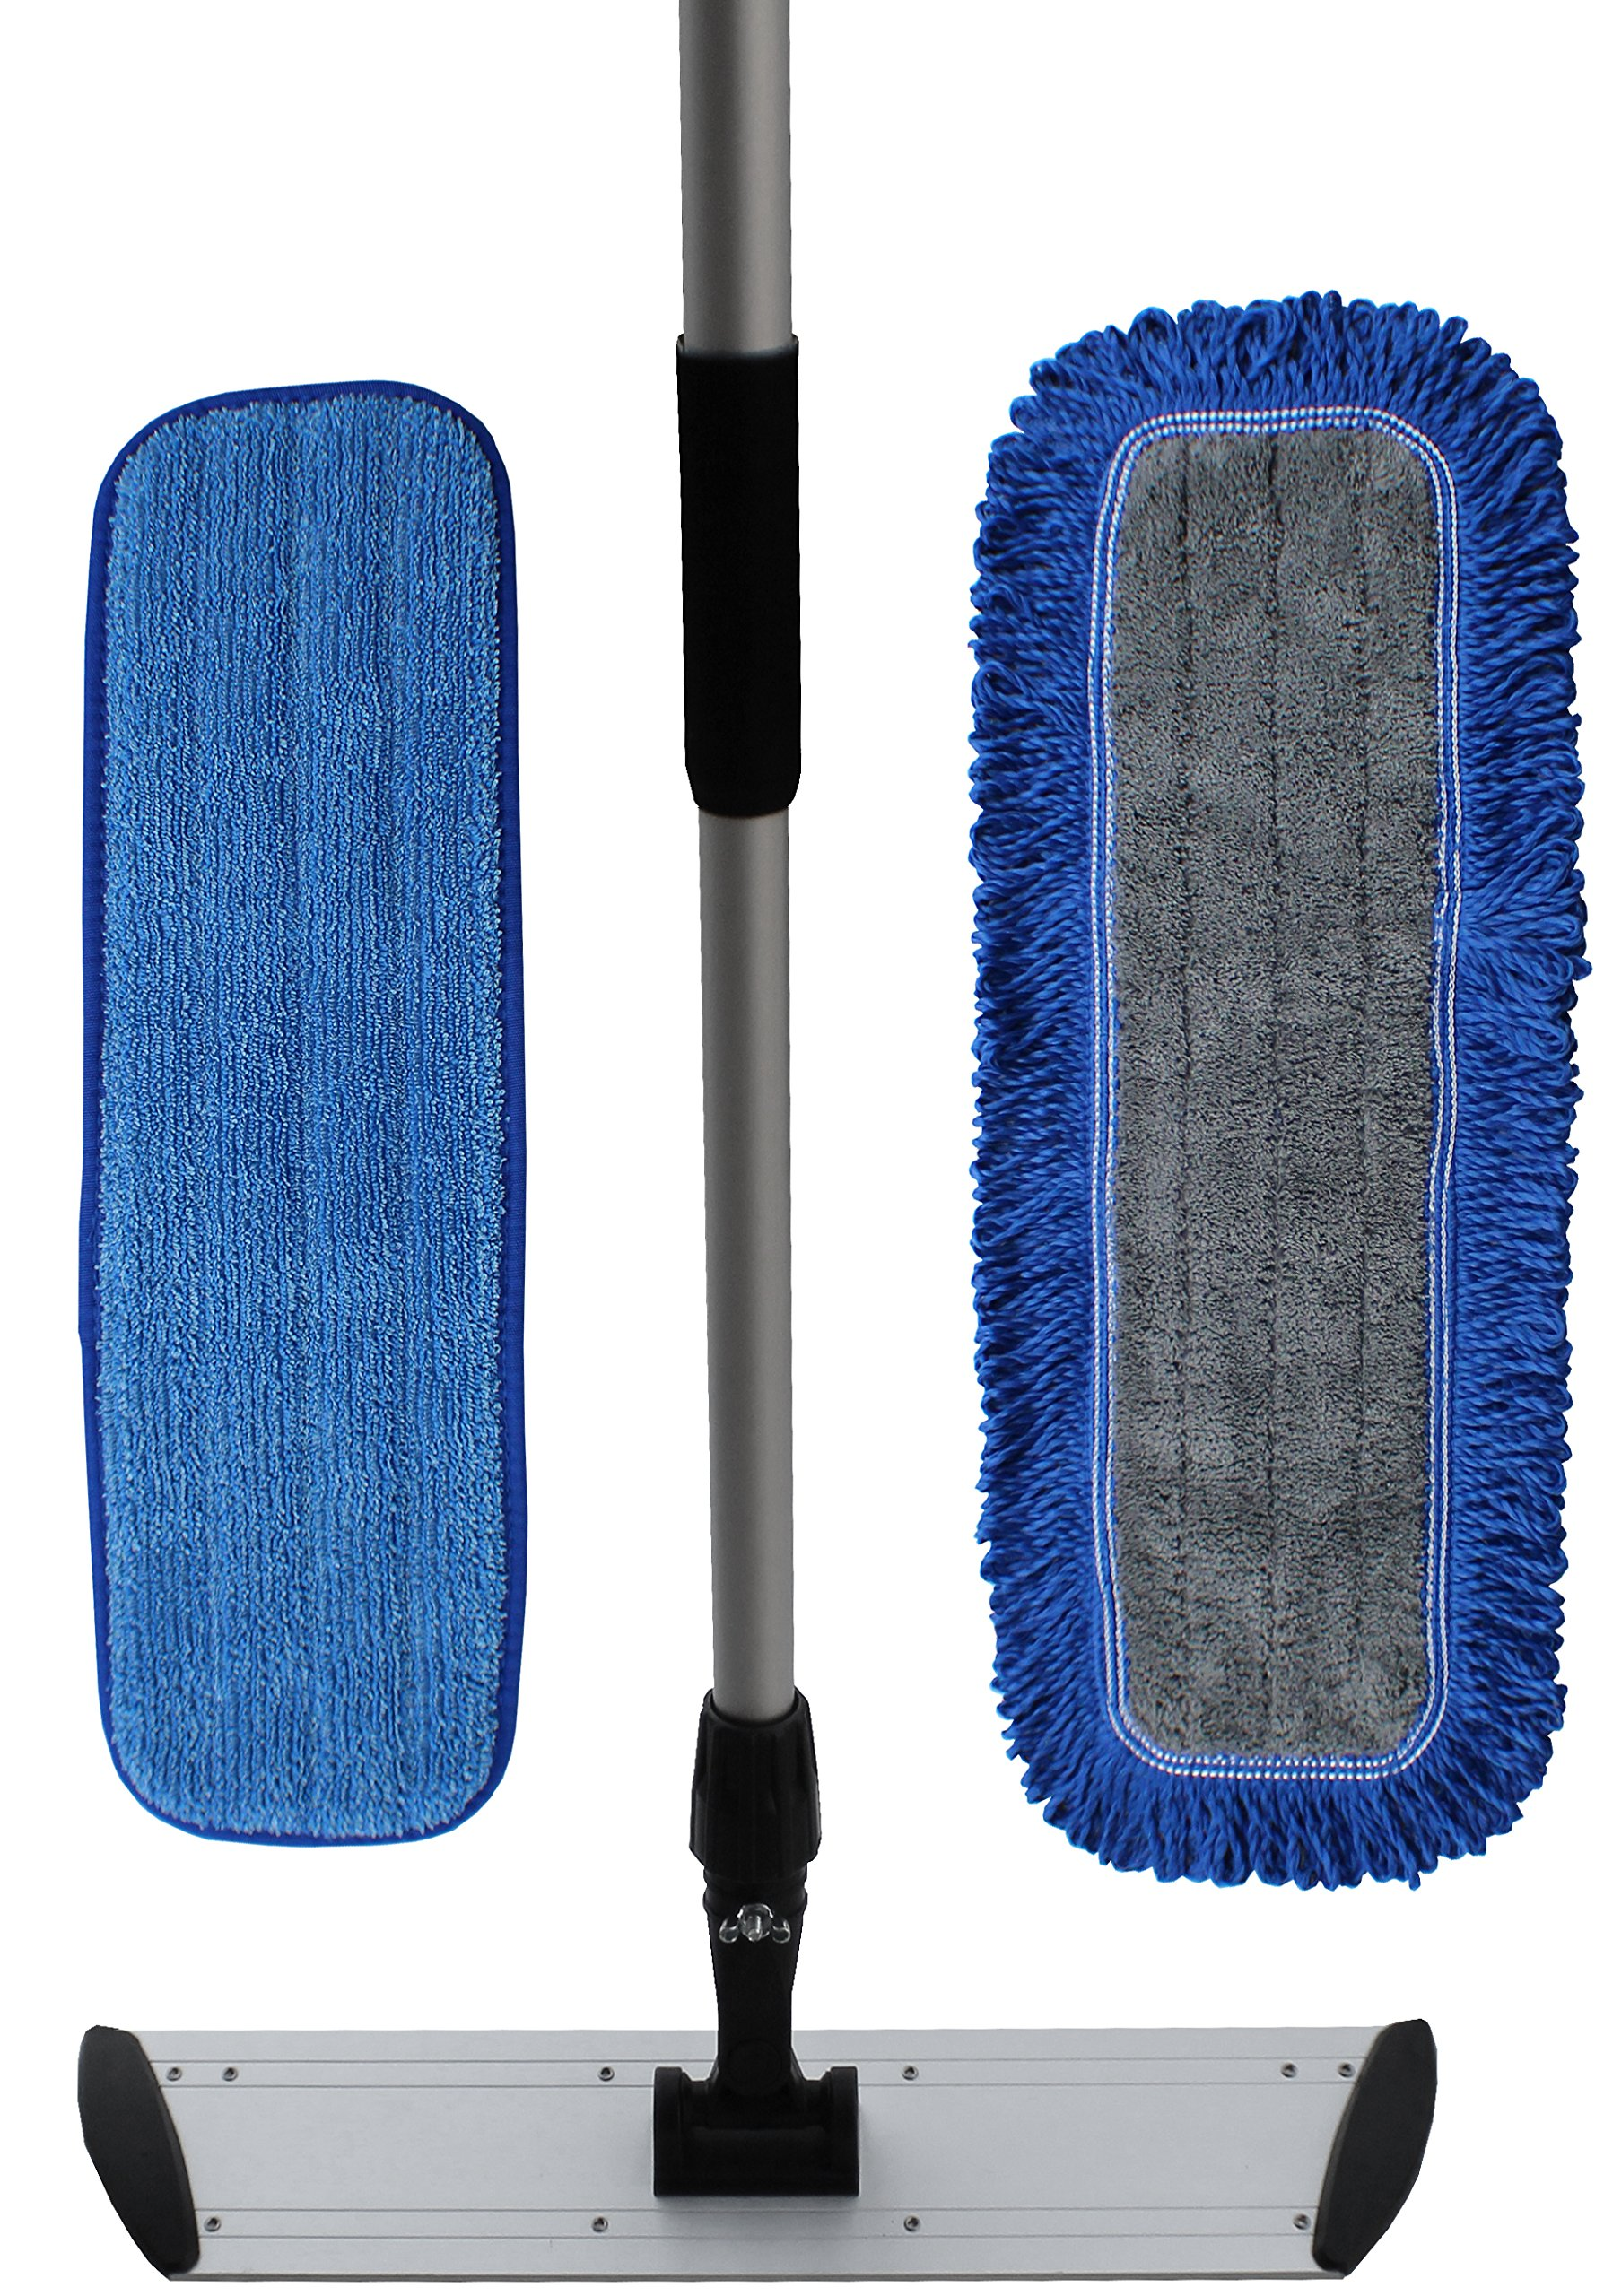 48'' Professional Microfiber Floor Cleaning Kit   Superior Microfiber Mop Pads   Microfiber Mop Handle & Frame Set (48'') by Direct Mop Sales